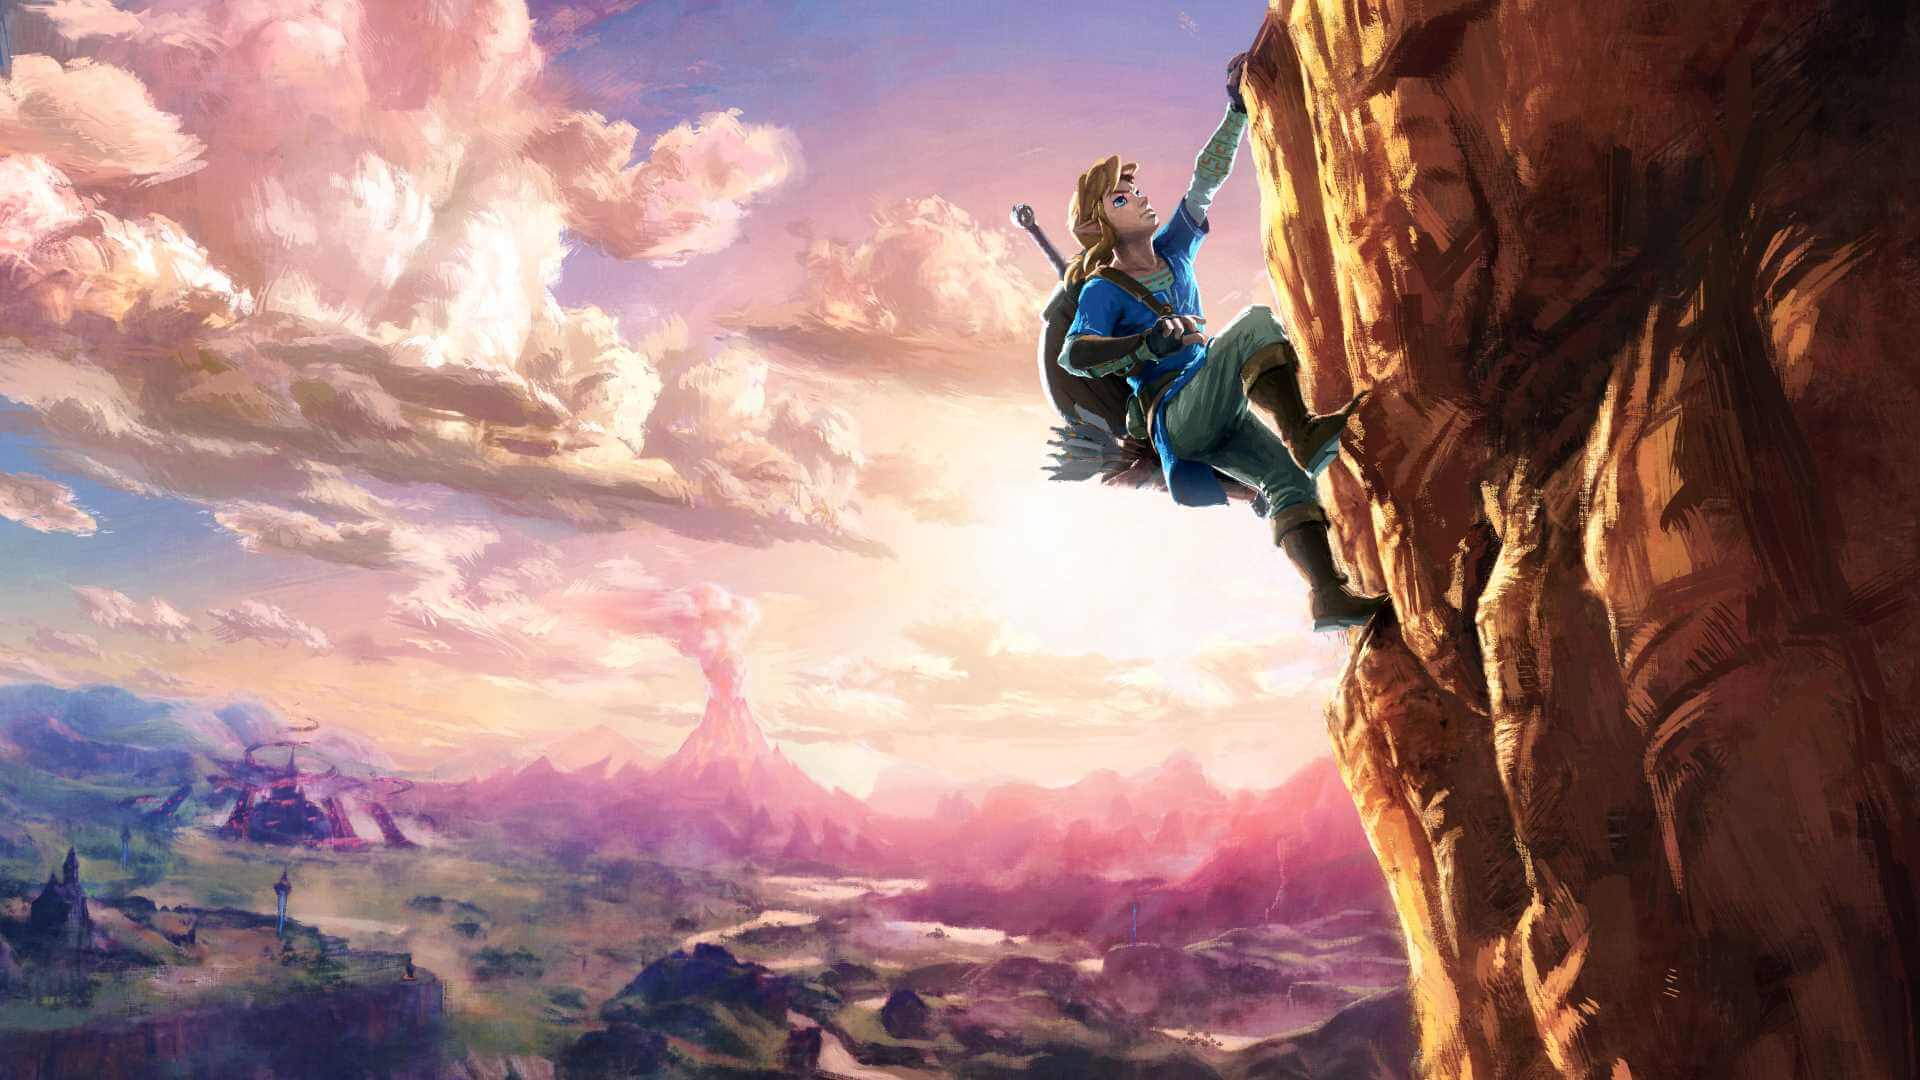 Zelda Breath of the Wild - header